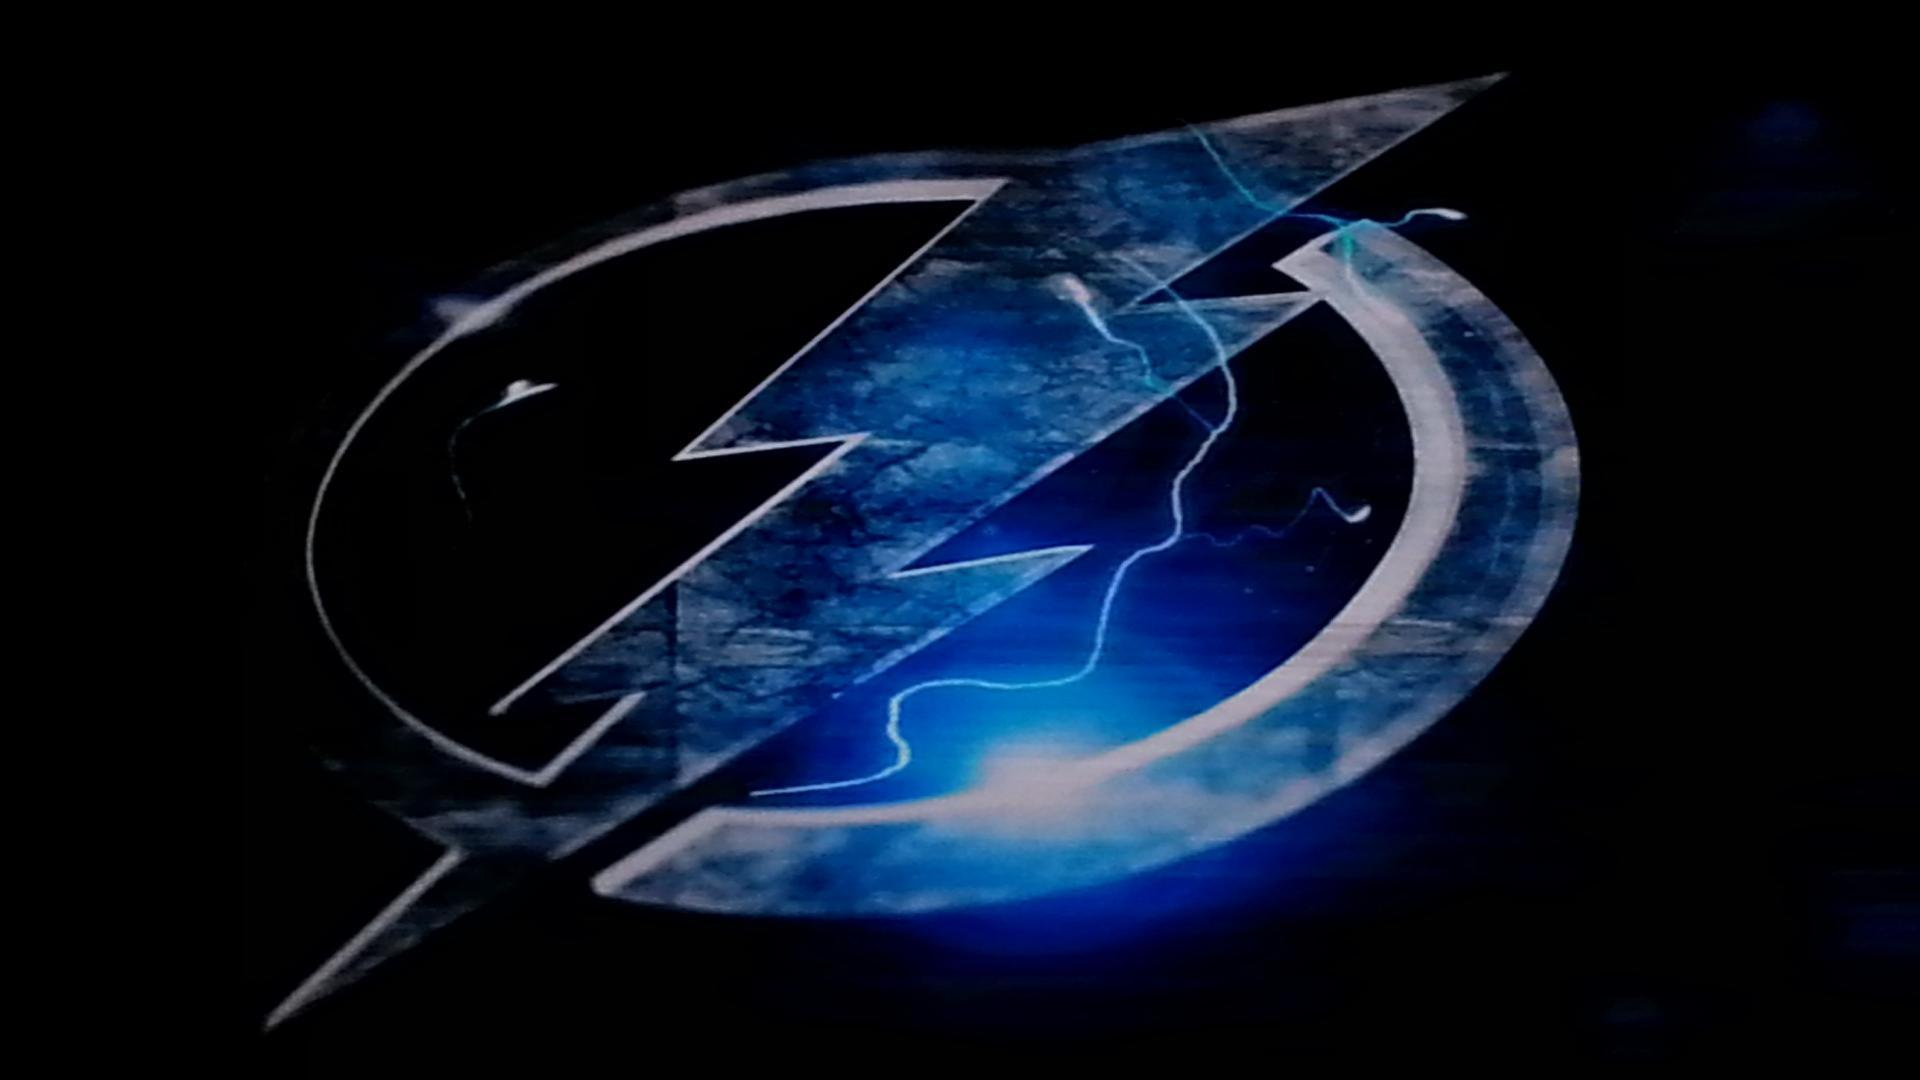 Tampa Bay Lightning Wallpapers Hd